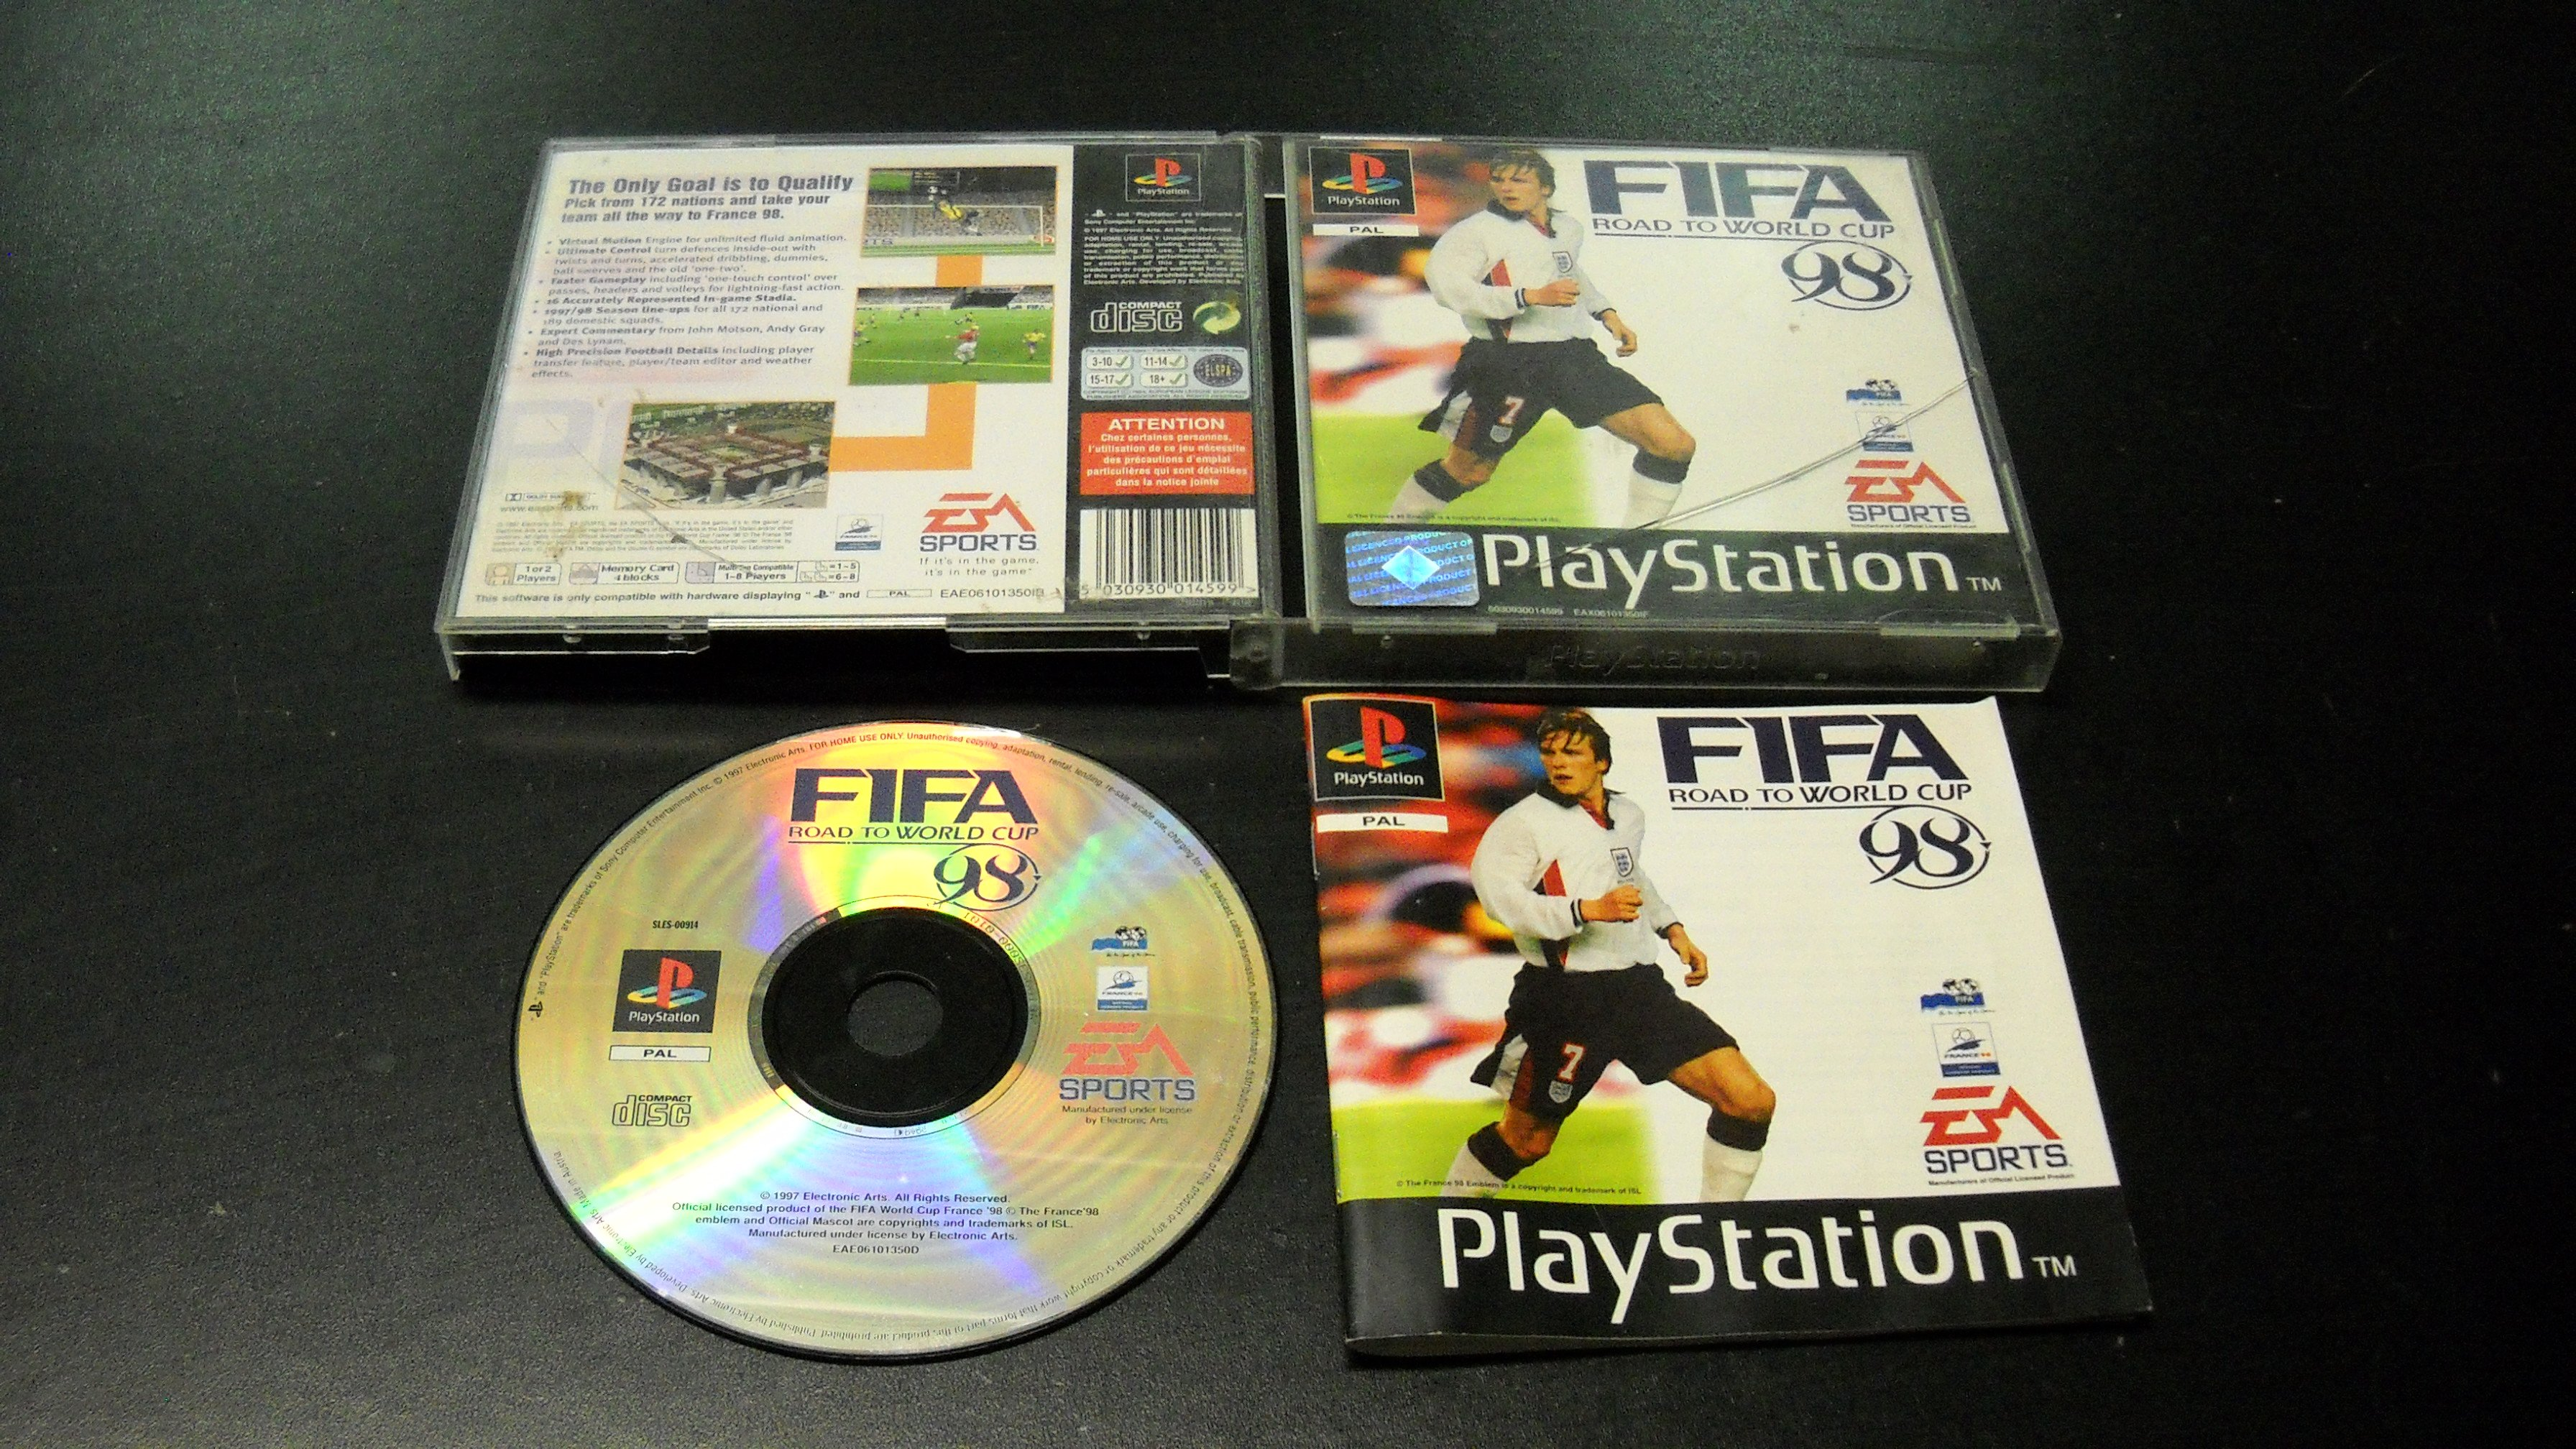 FIFA ROAD TO WORLD CUP 98 - PS1 - Opole